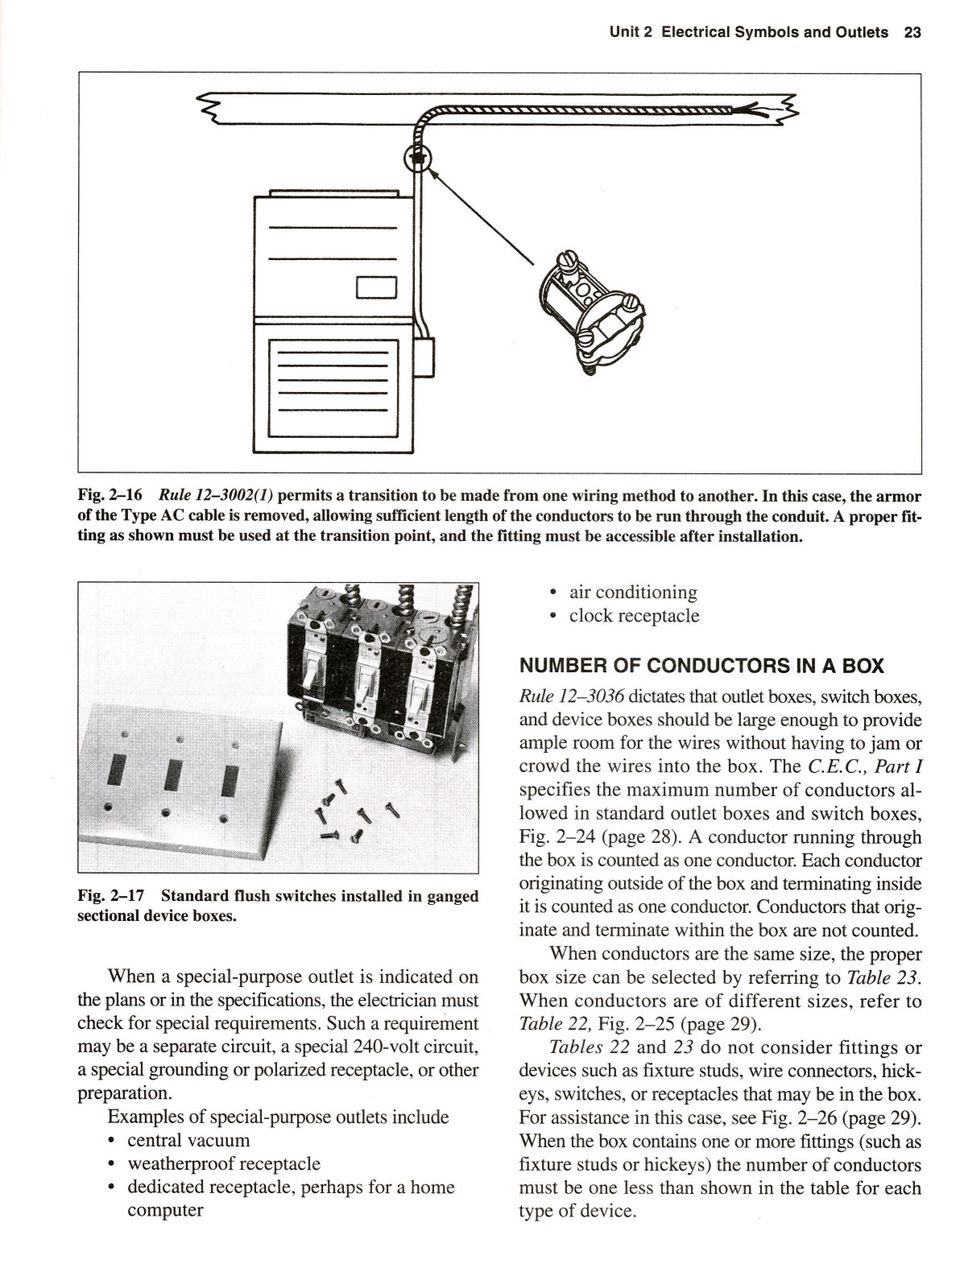 Electrical Symbols And Outlets Pdf